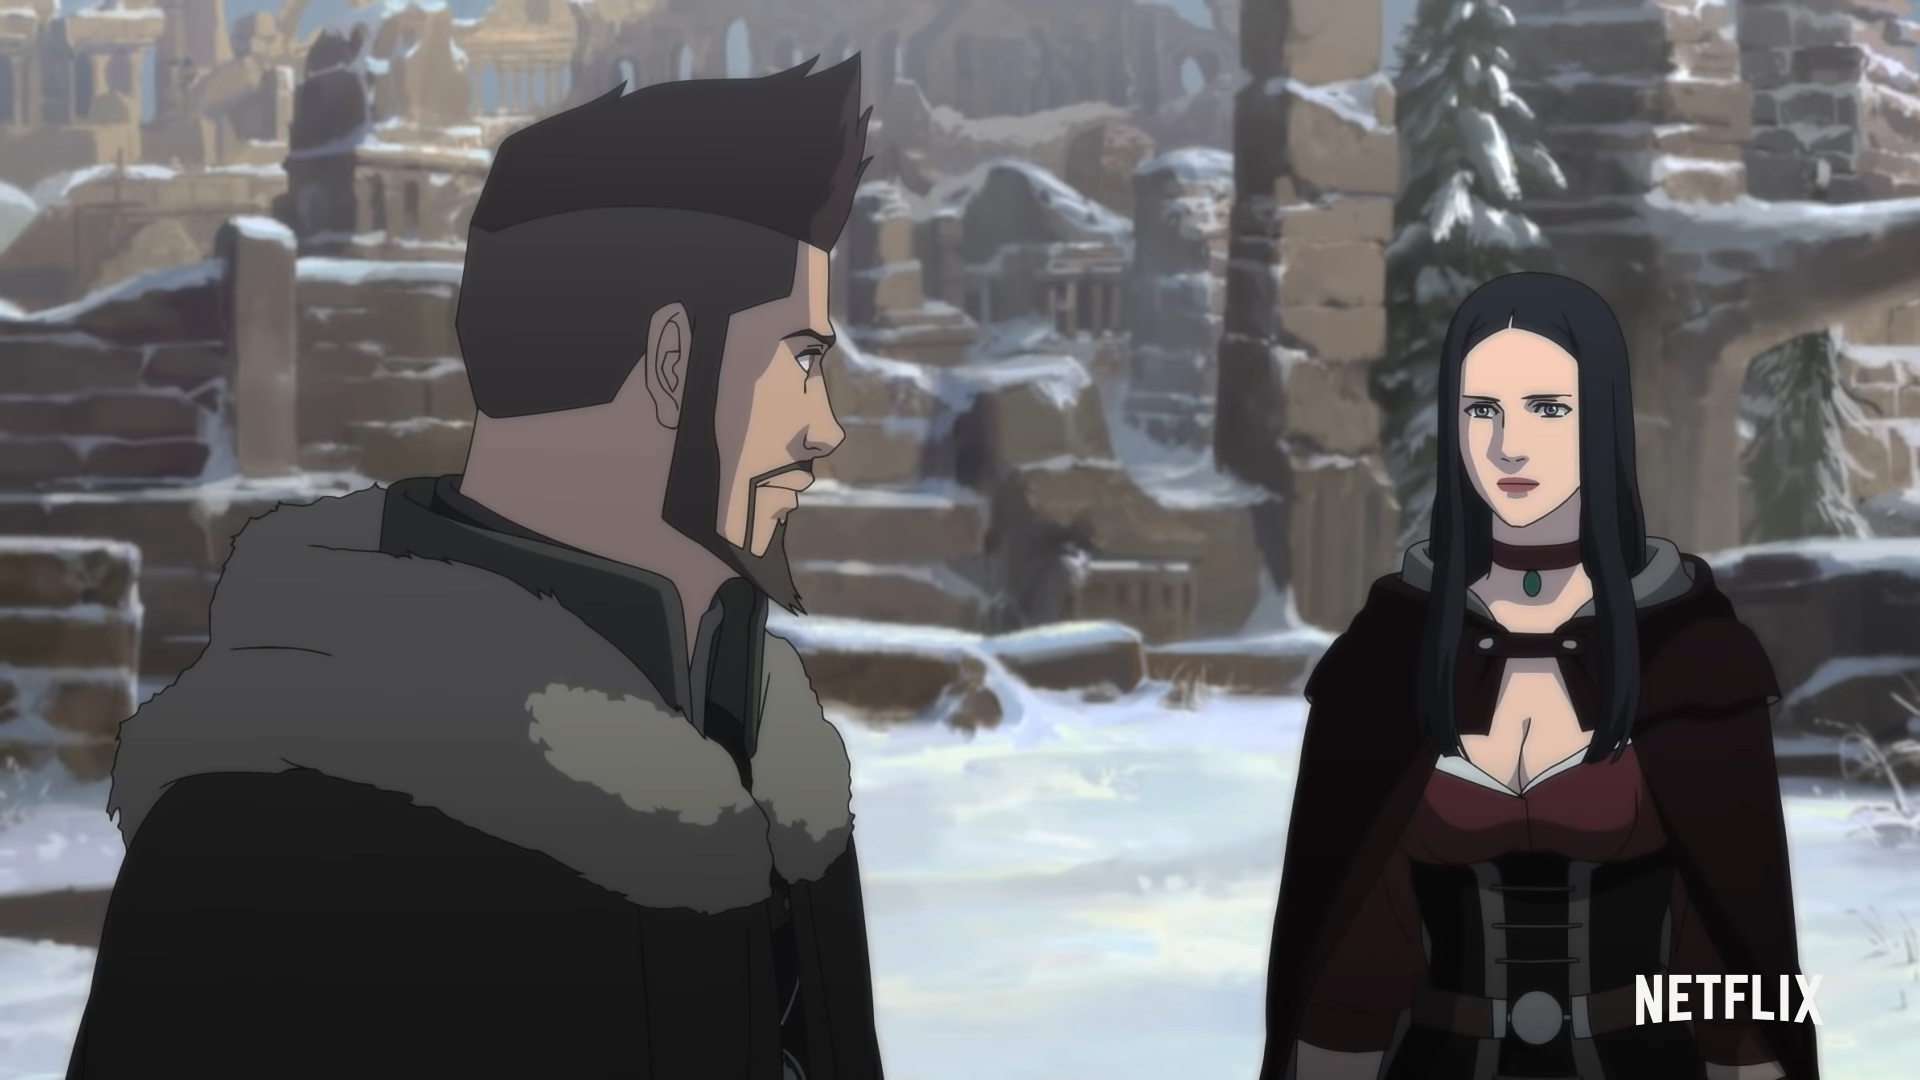 Vesemir and Tetra talk in the snow in The Witcher: Nightmare of the Wolf